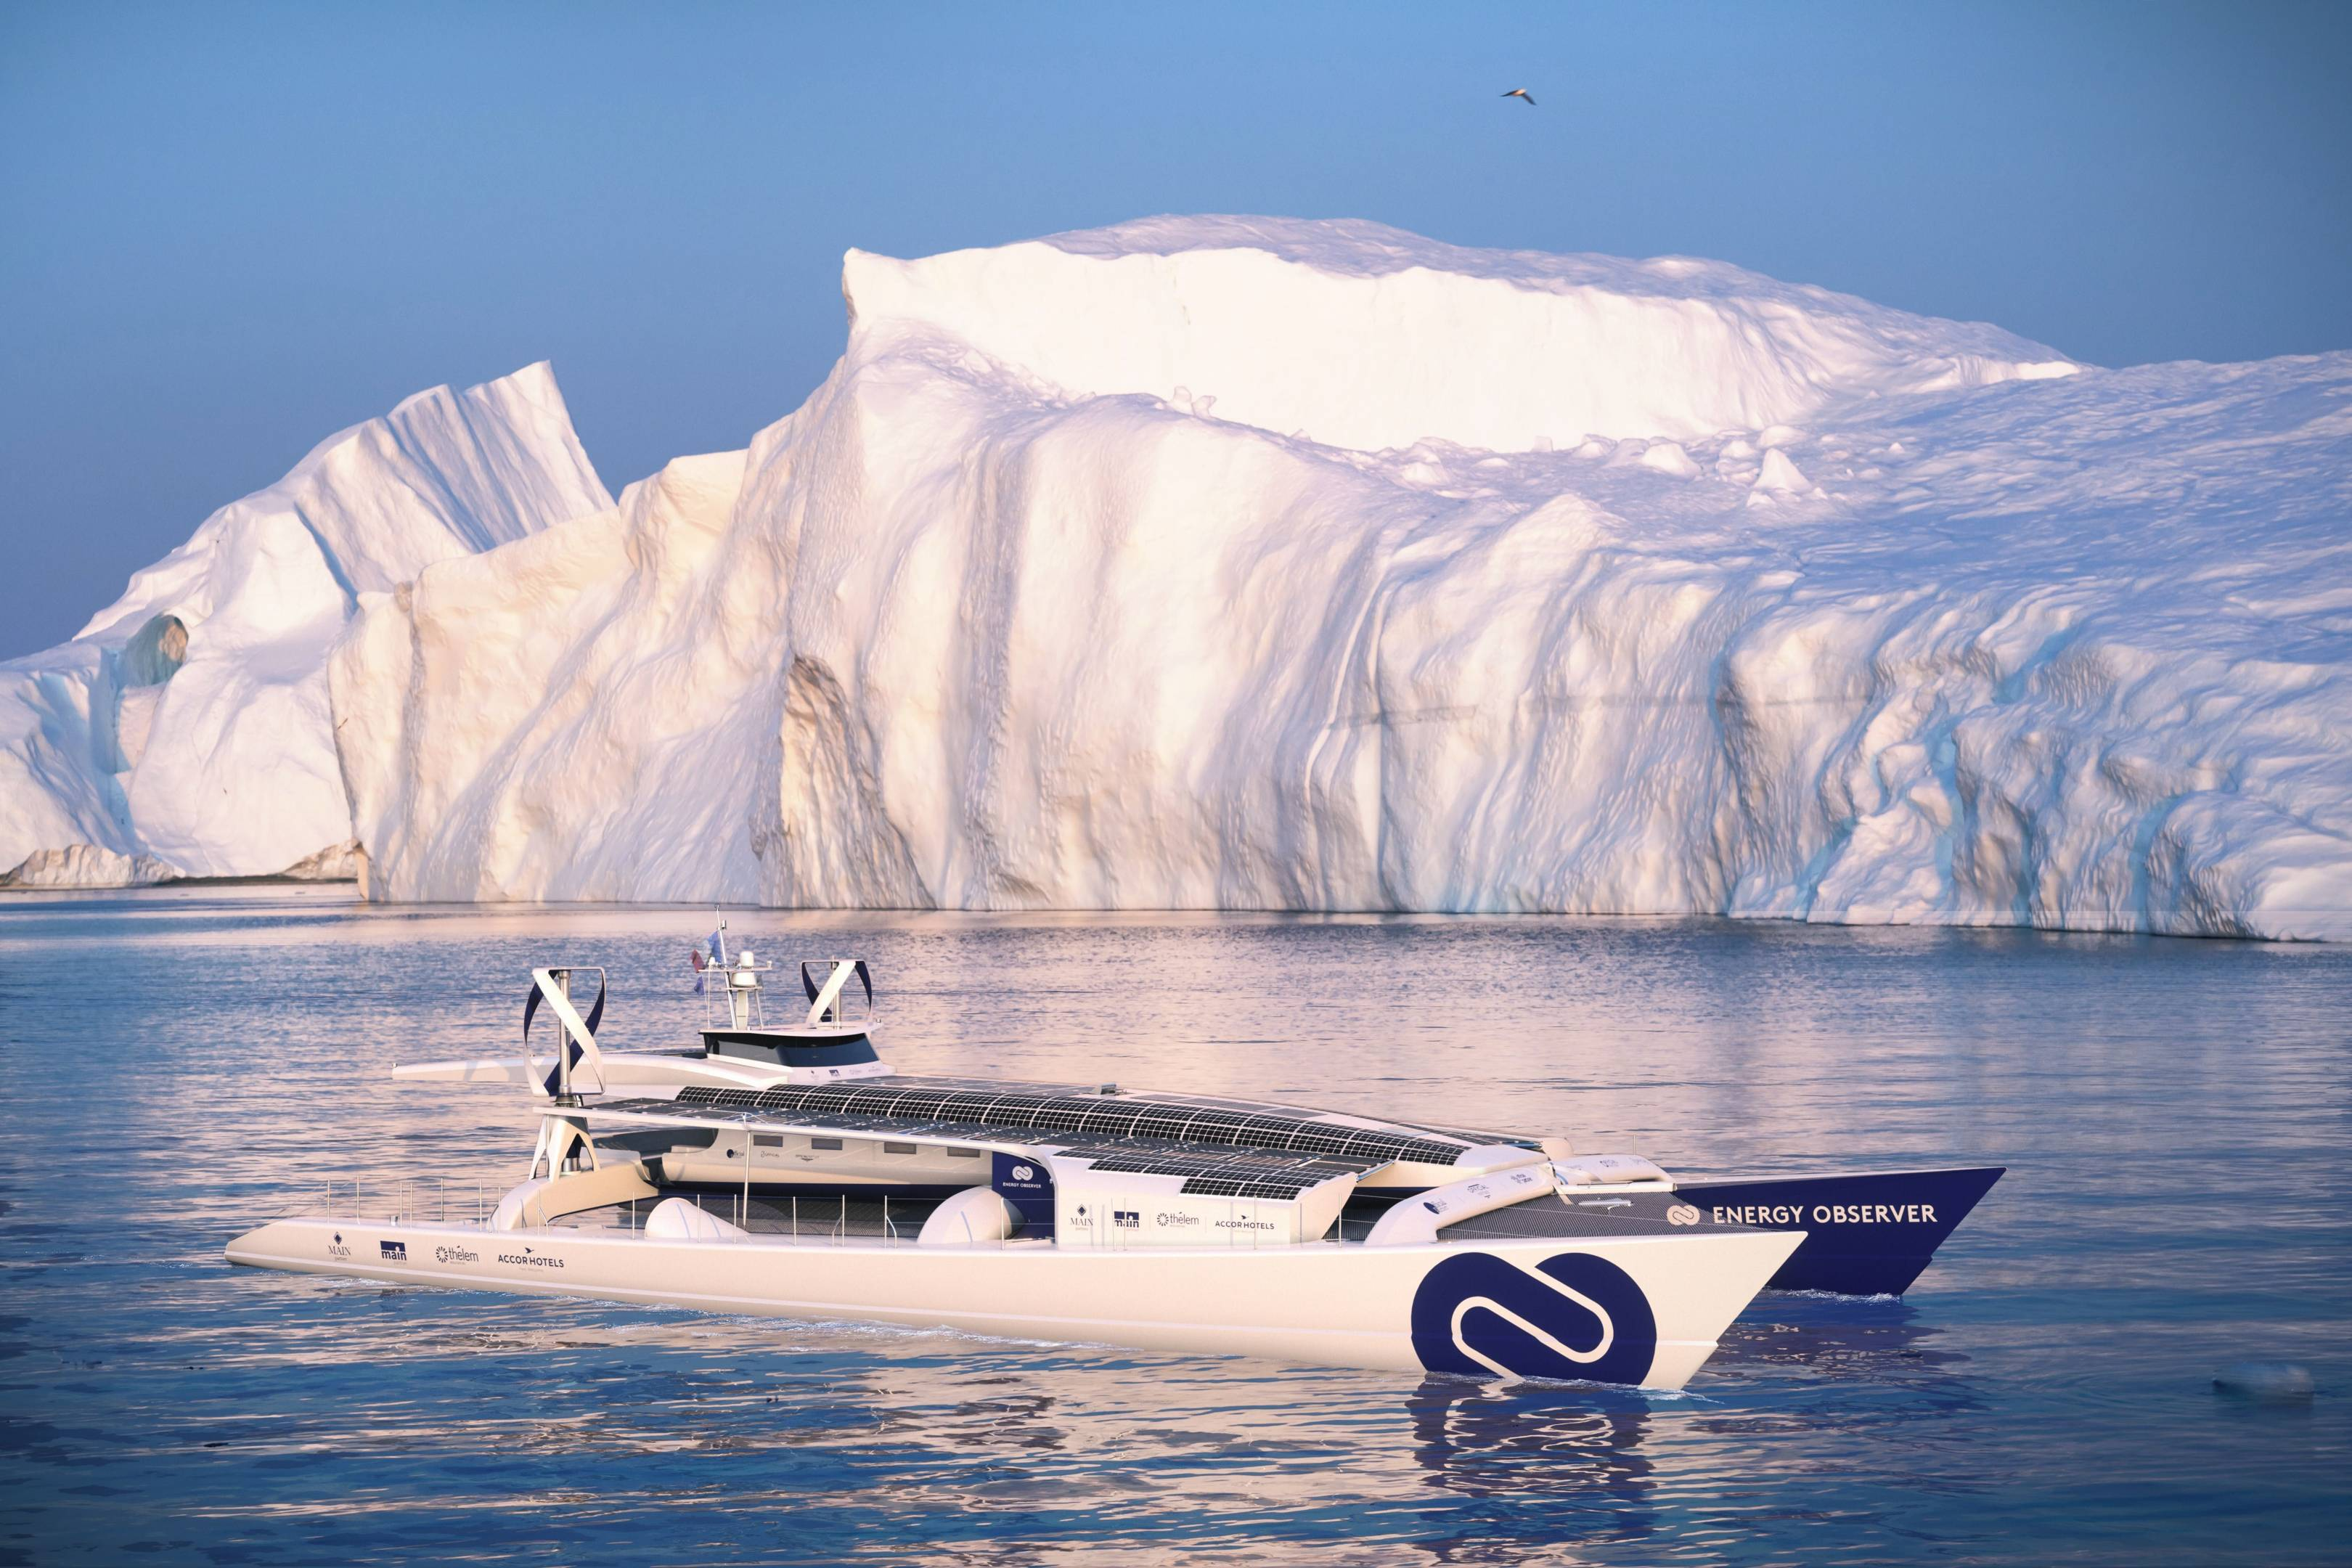 The Energy Observer: Boat powered by renewable energy to